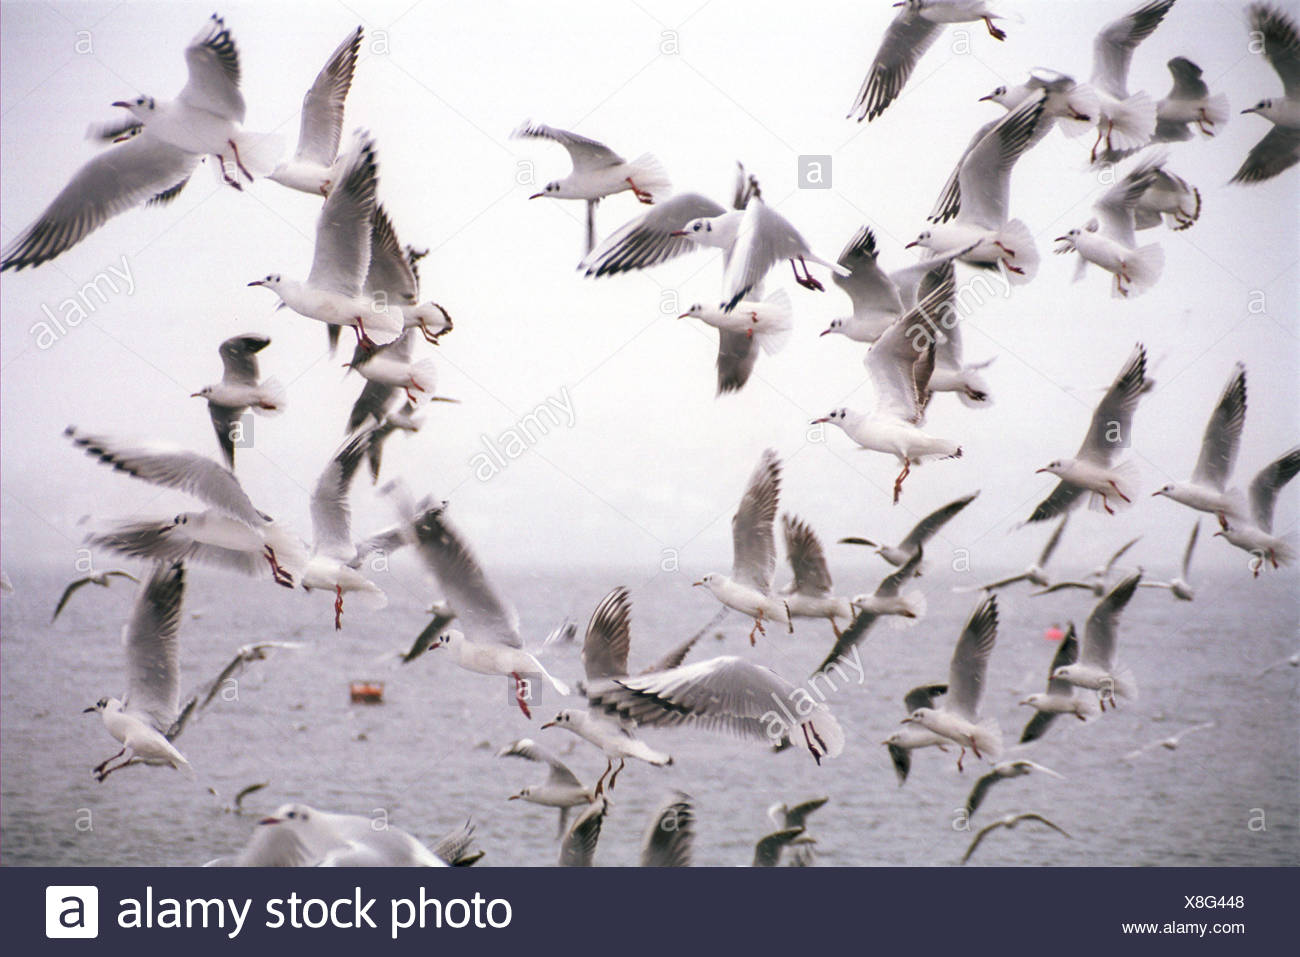 Flying seagulls on Zuerichsee - Stock Image